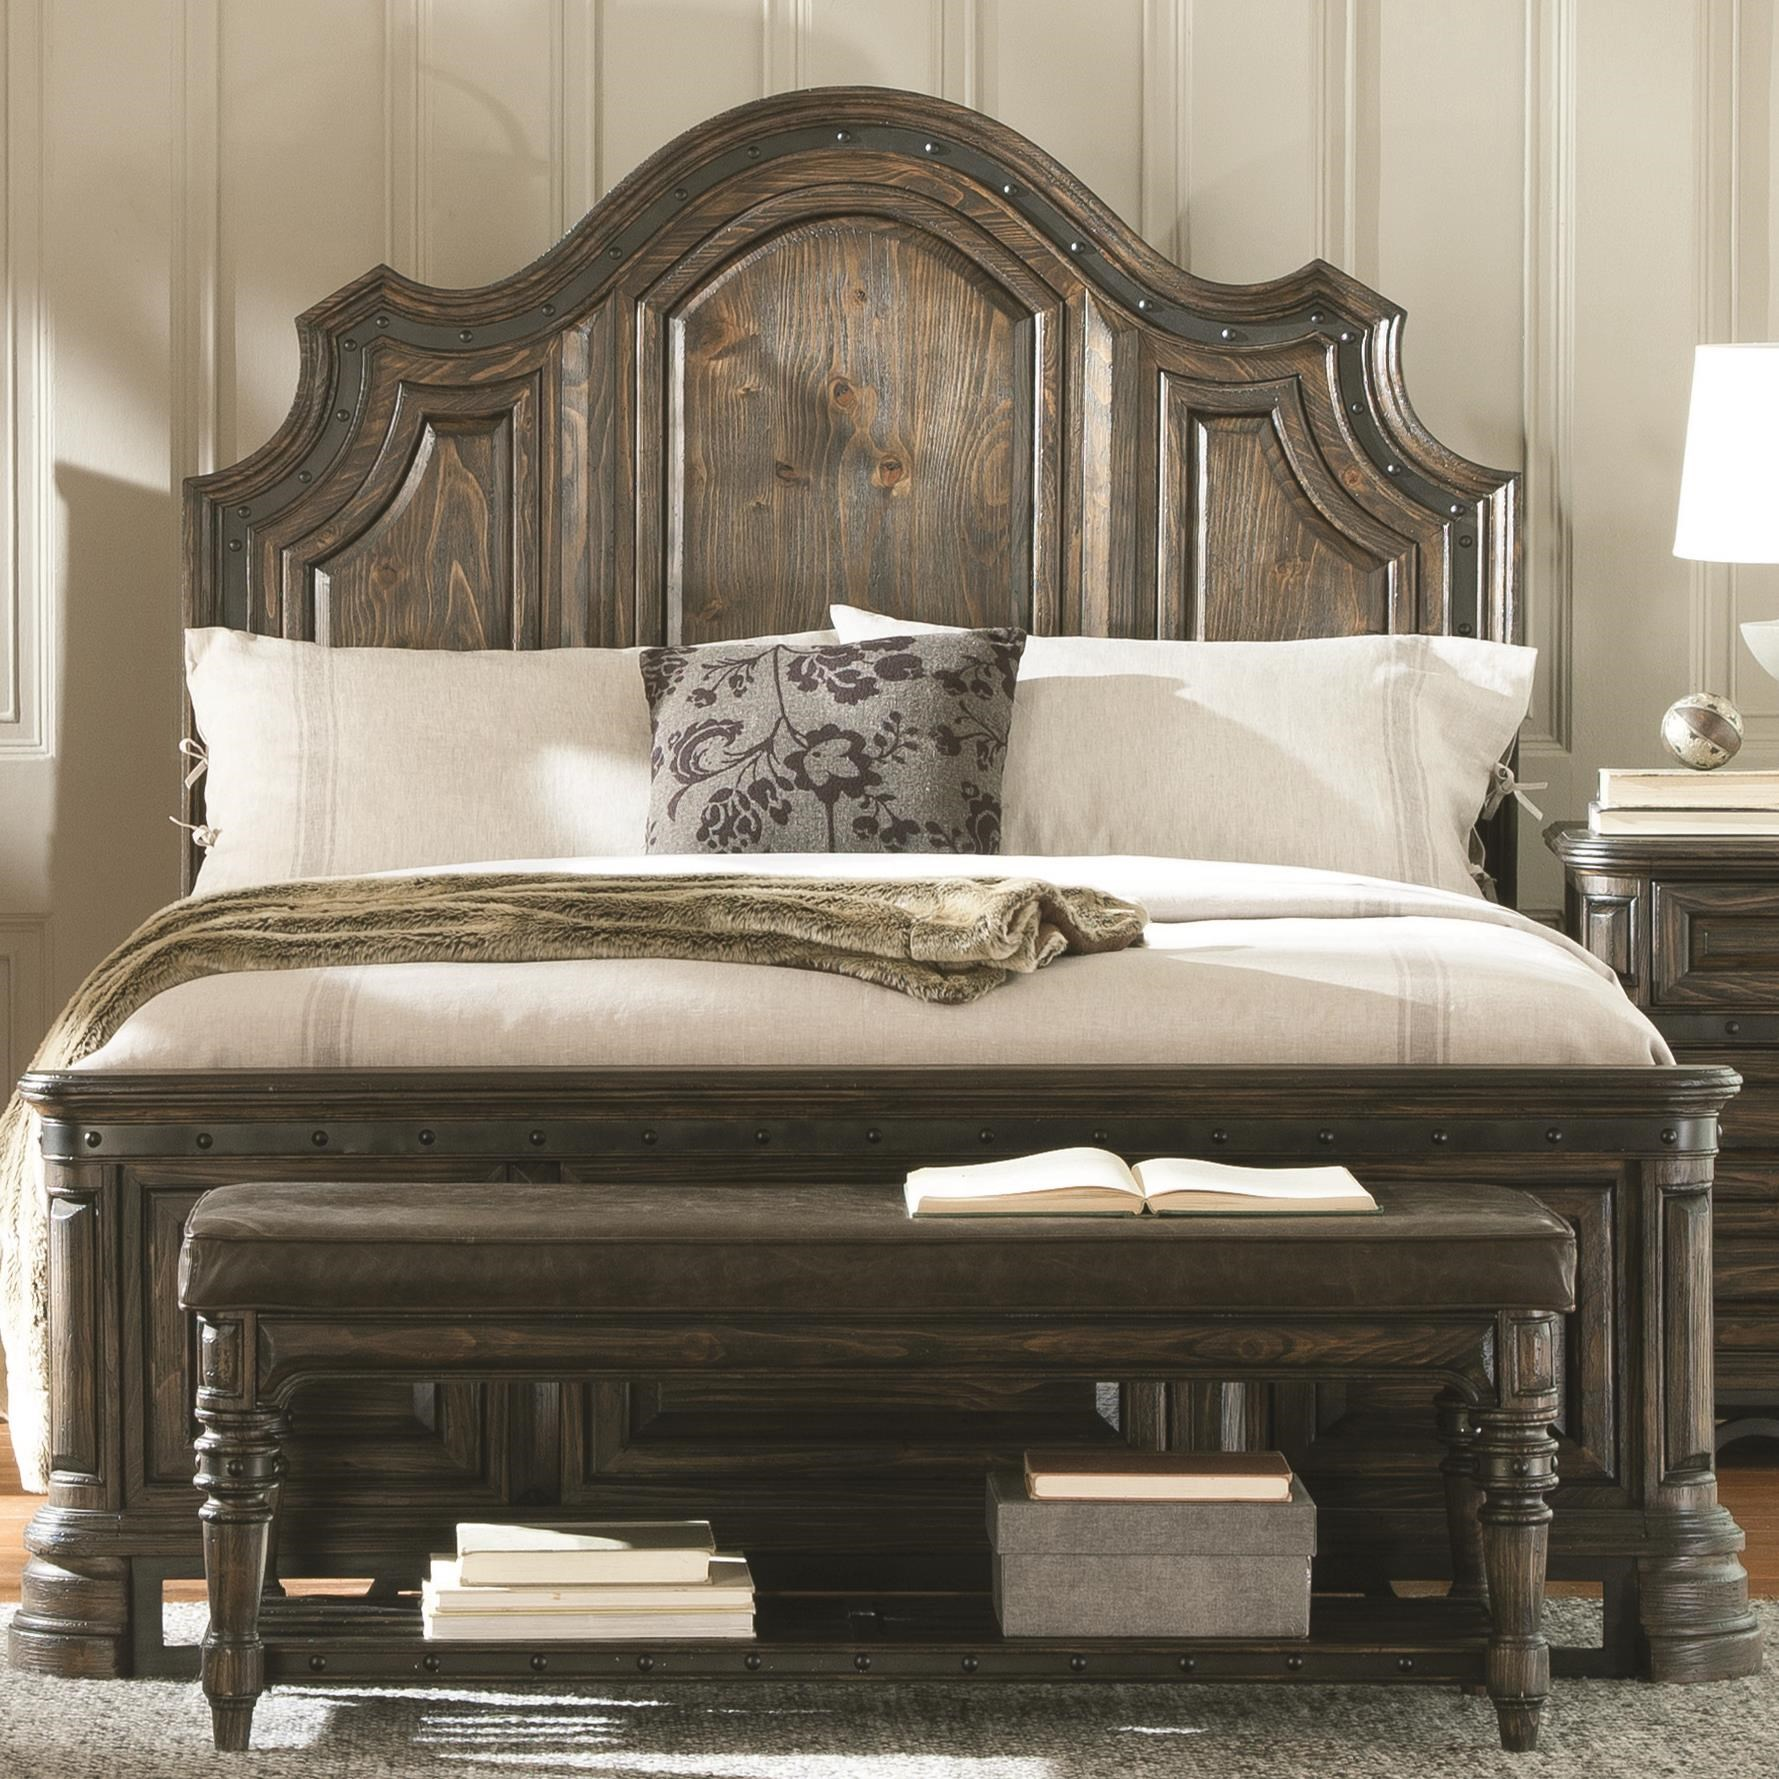 Exceptional Bed Shown May Not Represent Size Indicated